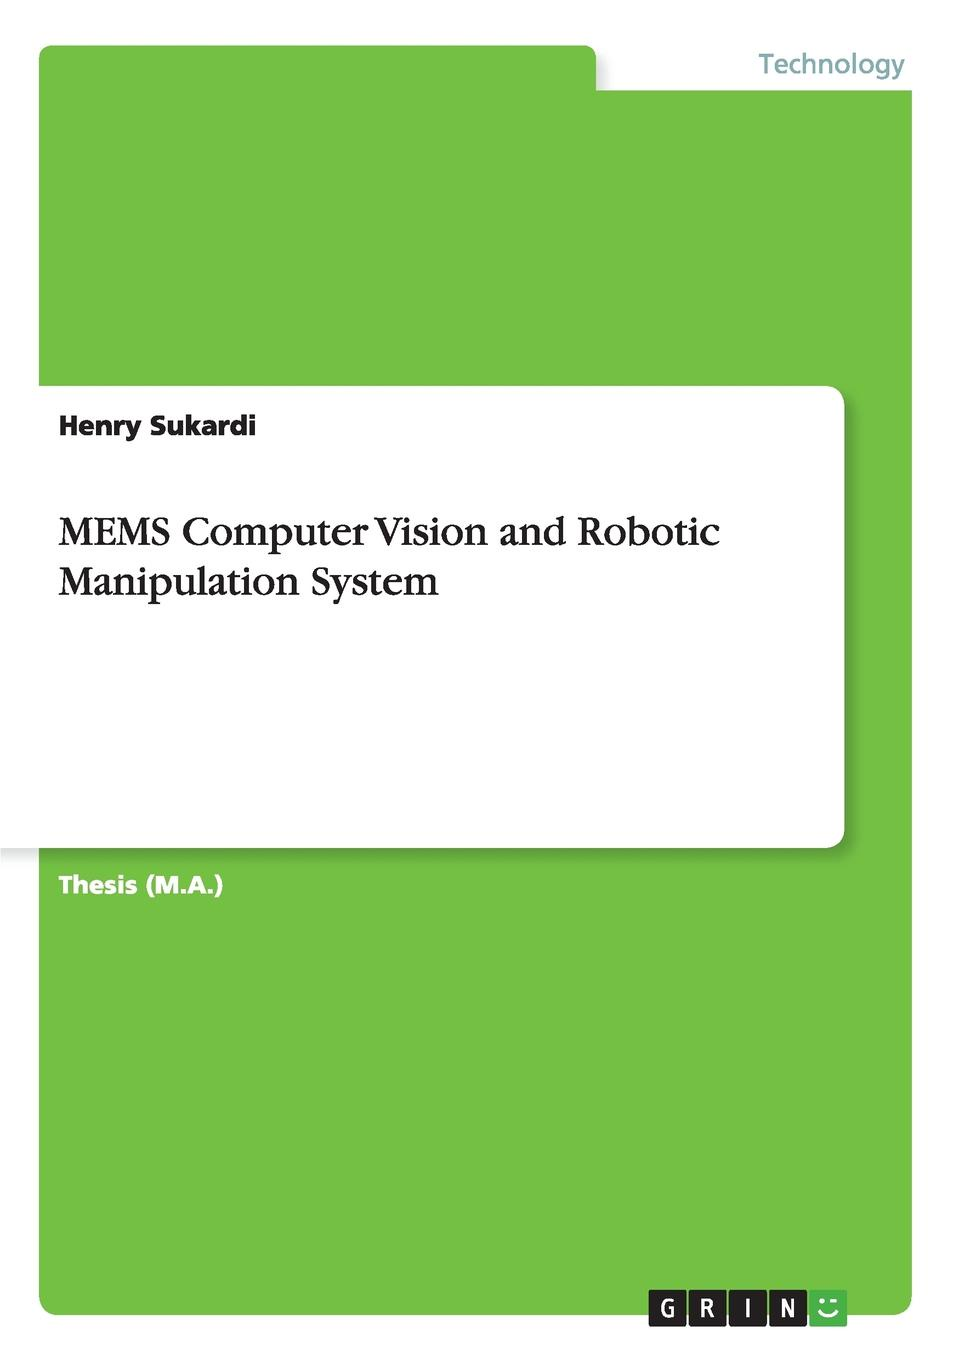 Henry Sukardi MEMS Computer Vision and Robotic Manipulation System